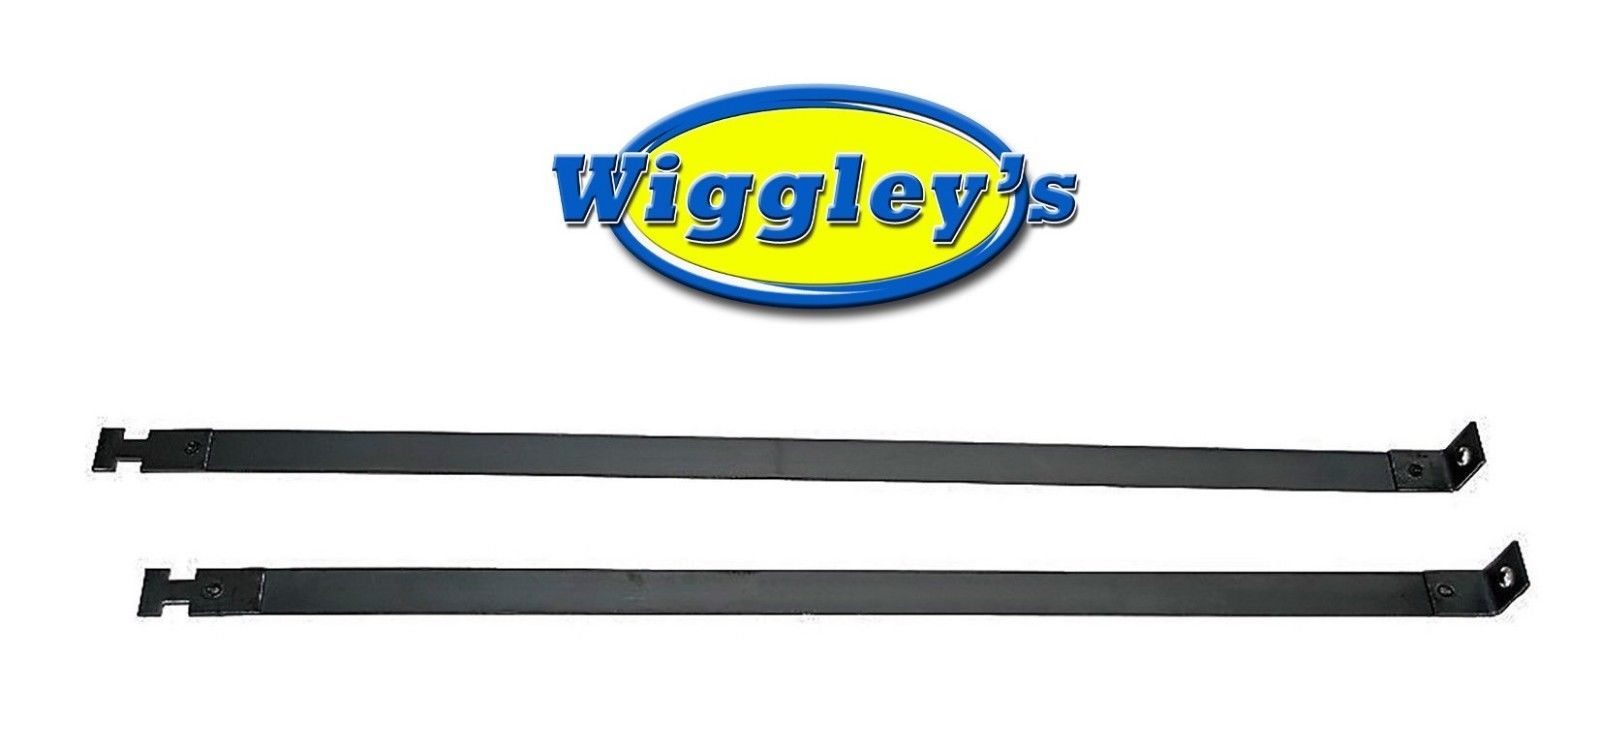 FUEL TANK STRAP SET IST197, ST197 FITS 00 01 02 03 04 05 DODGE PLYMOUTH NEON